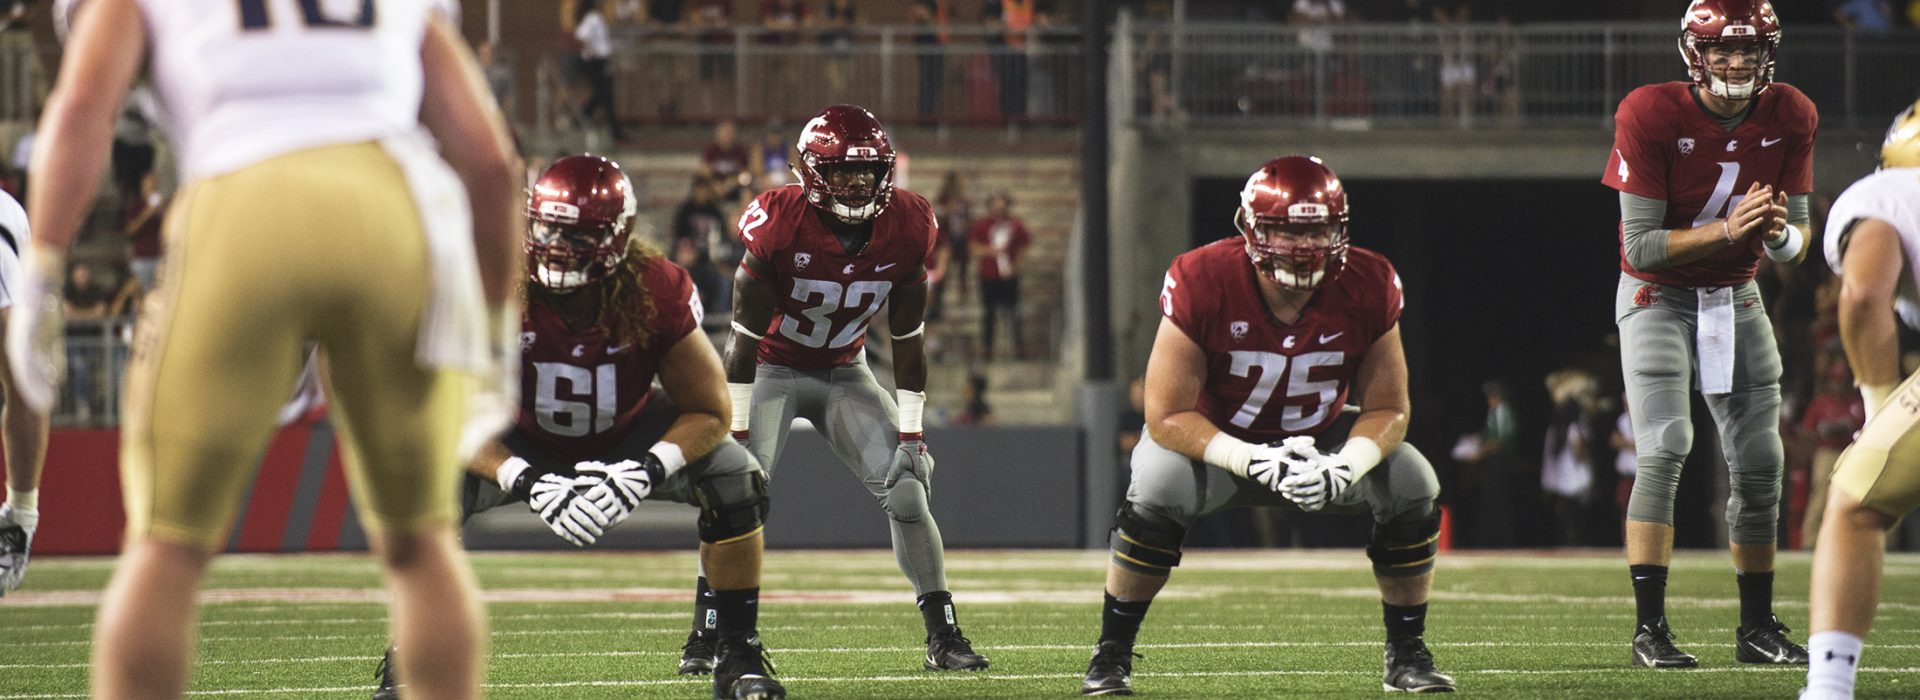 Cougars eyeing first 2-0 start since 2011